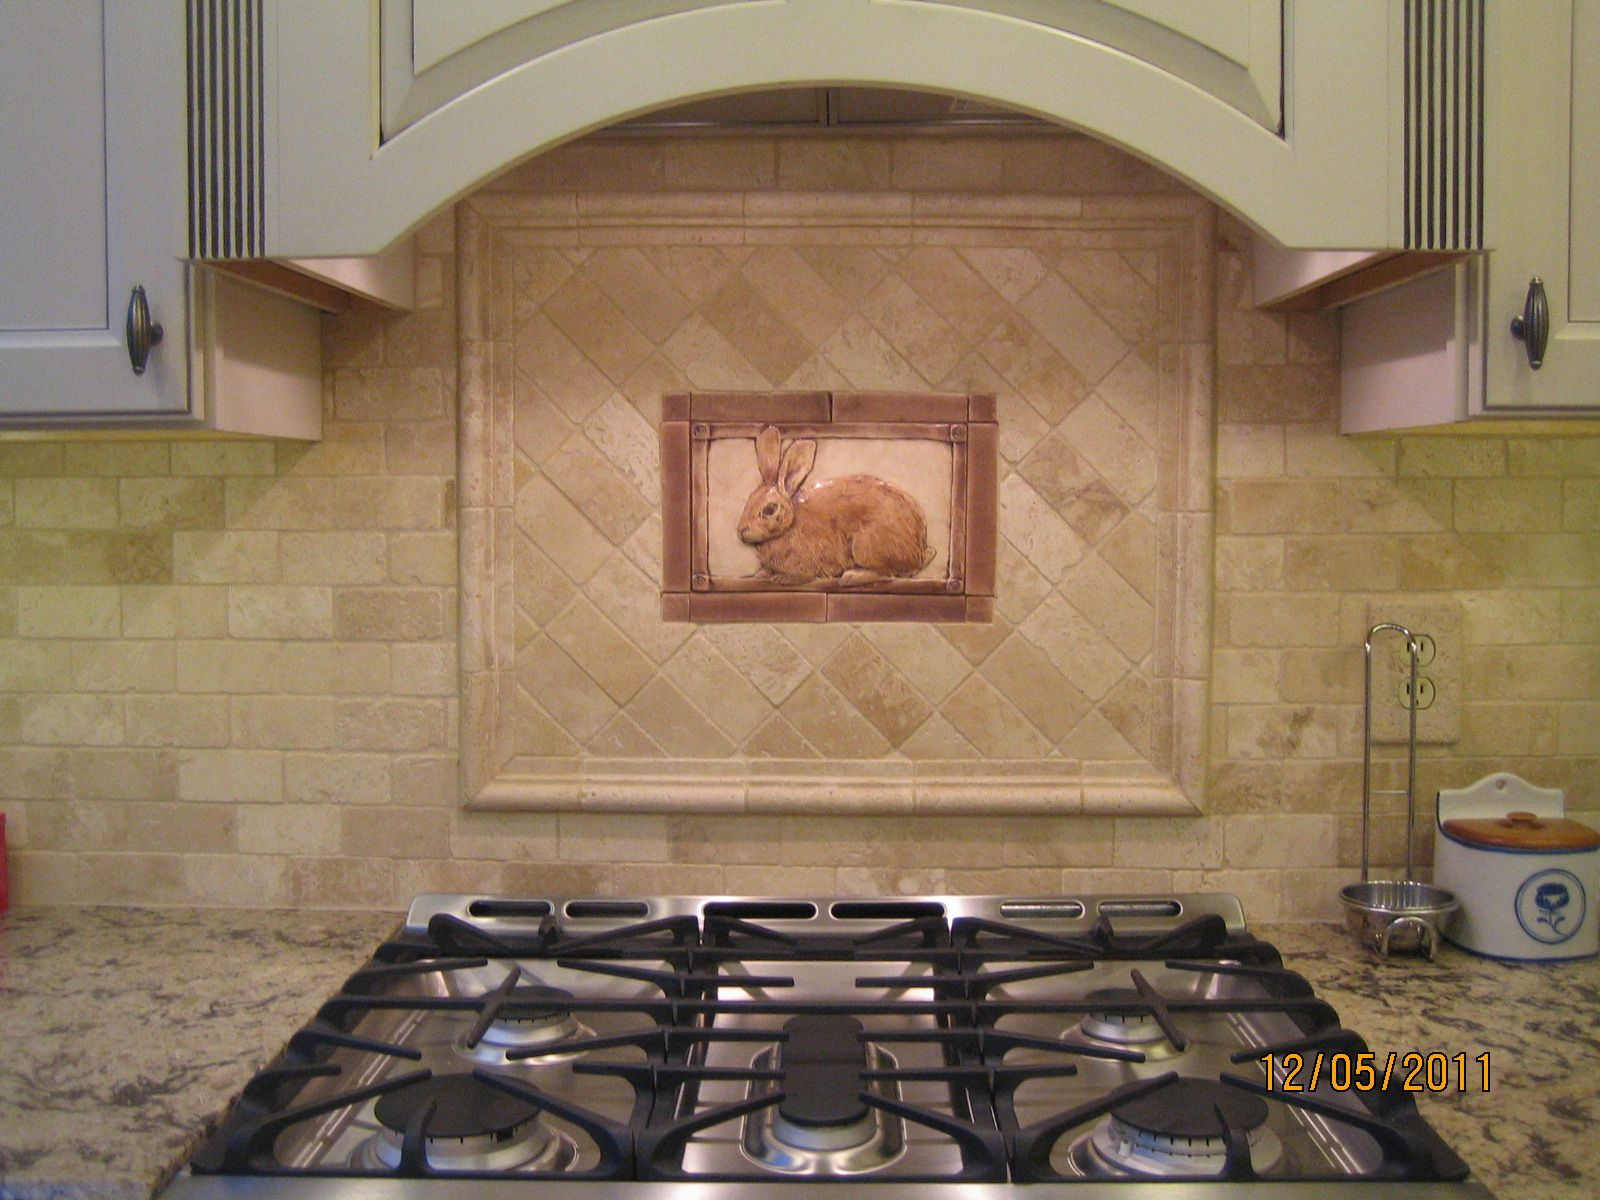 Kitchen Tiled Backsplash With Handcrafted Rabbit Tile As An